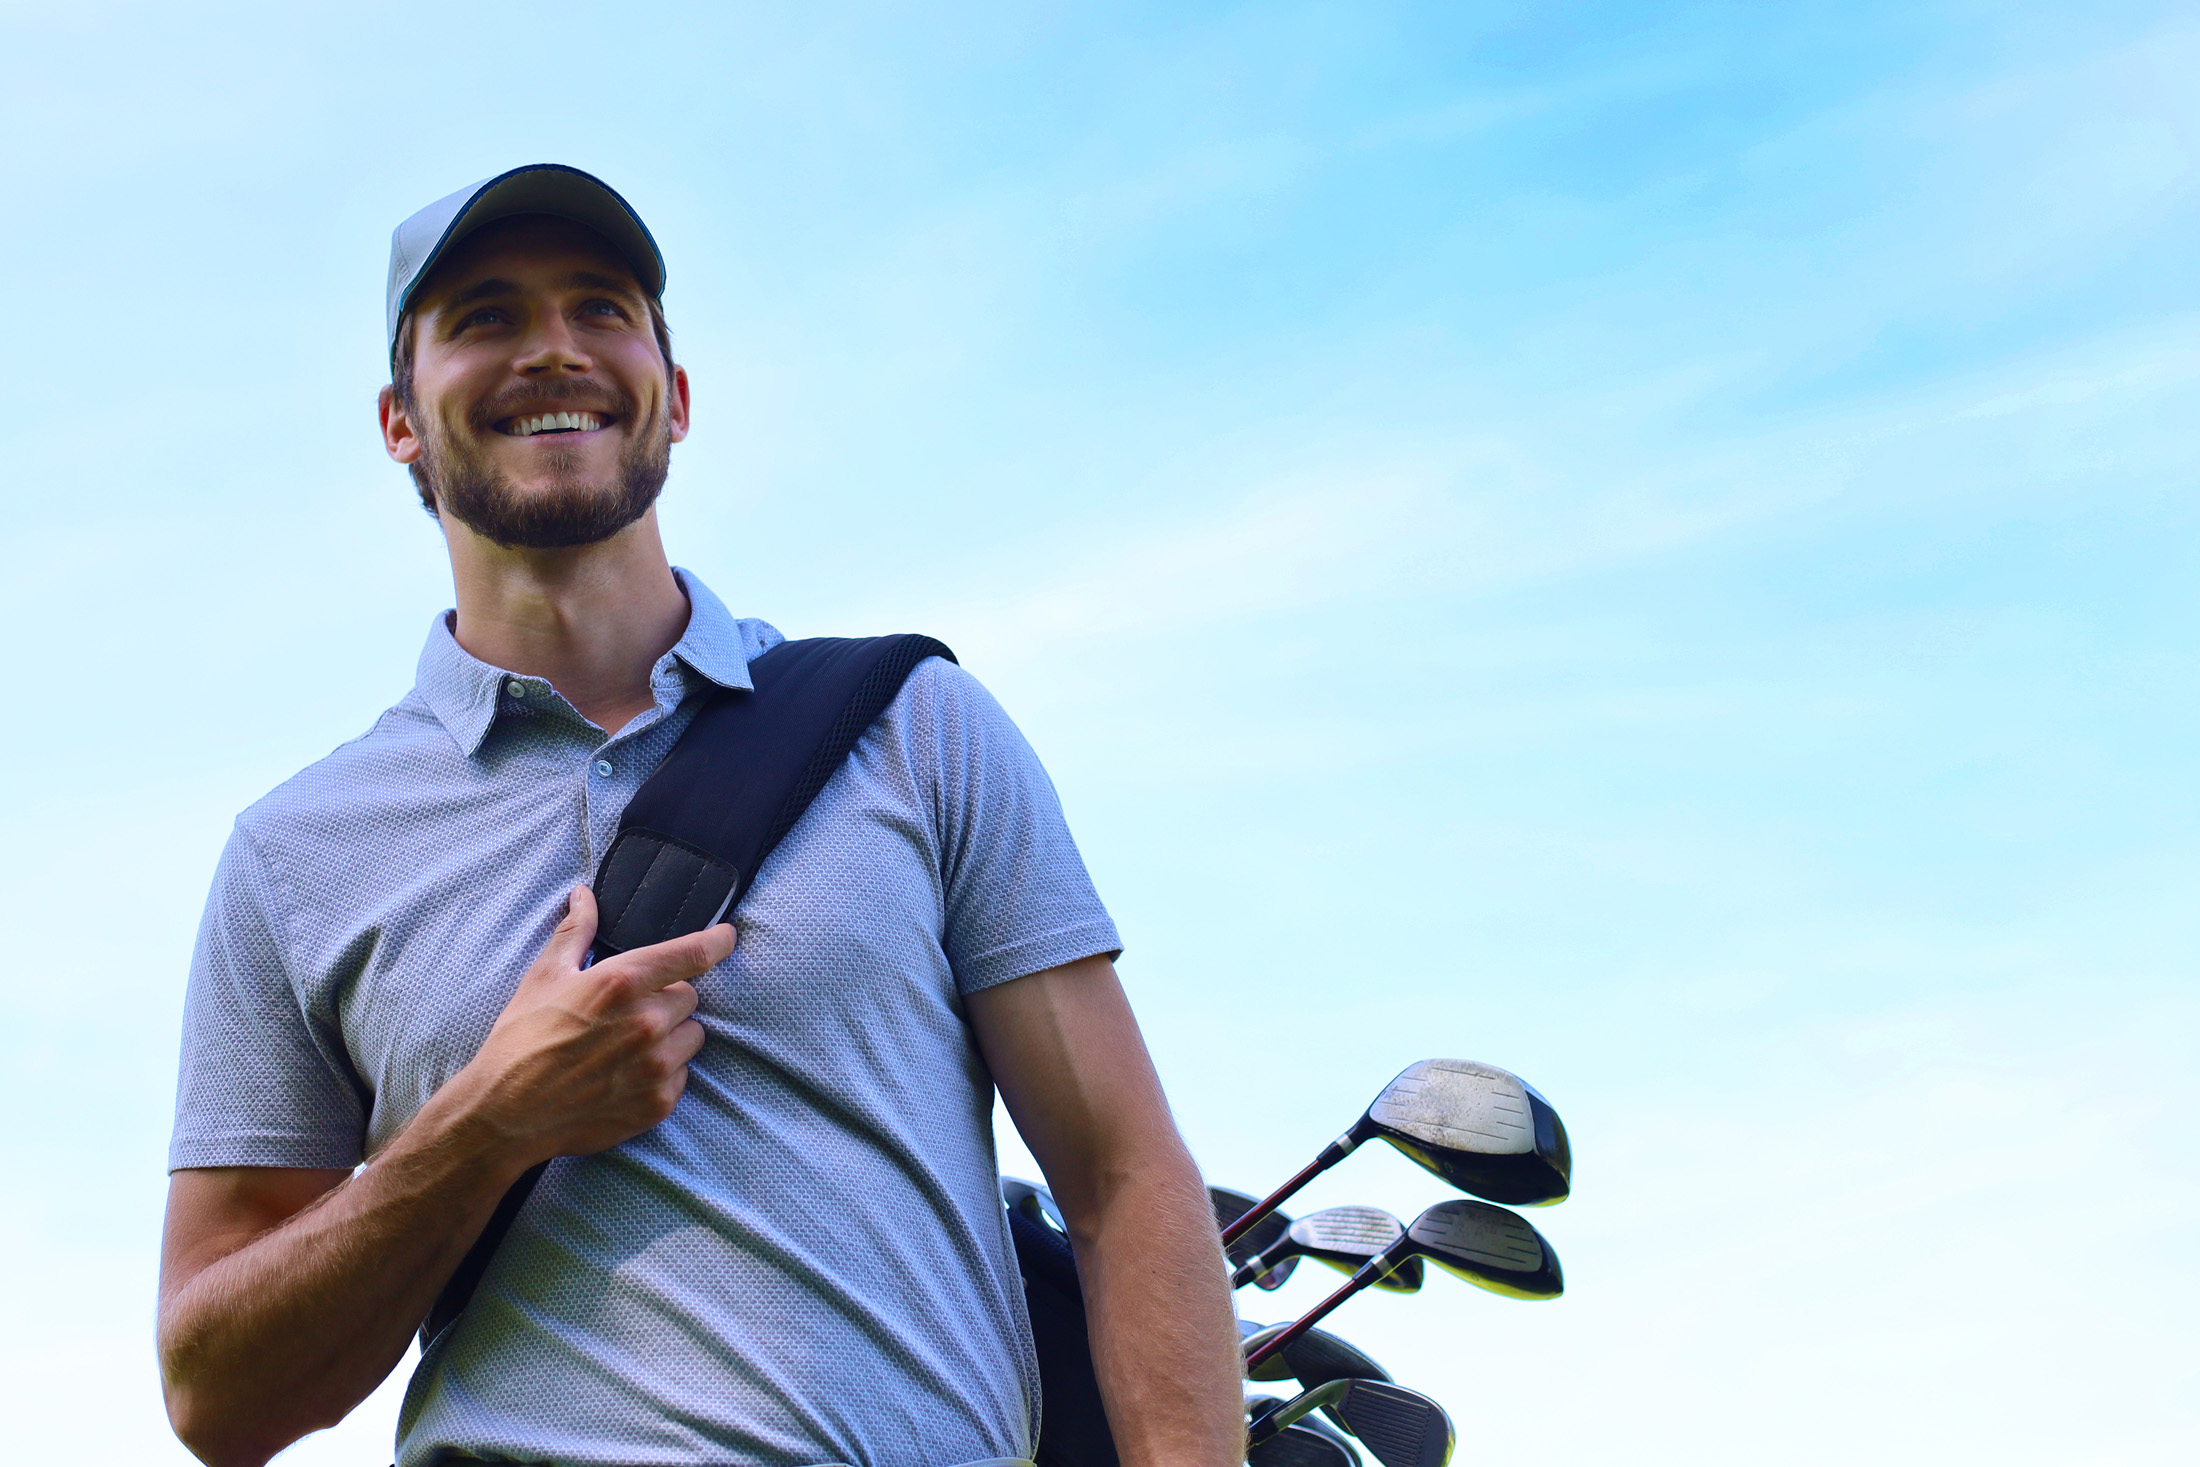 6 golf benefits